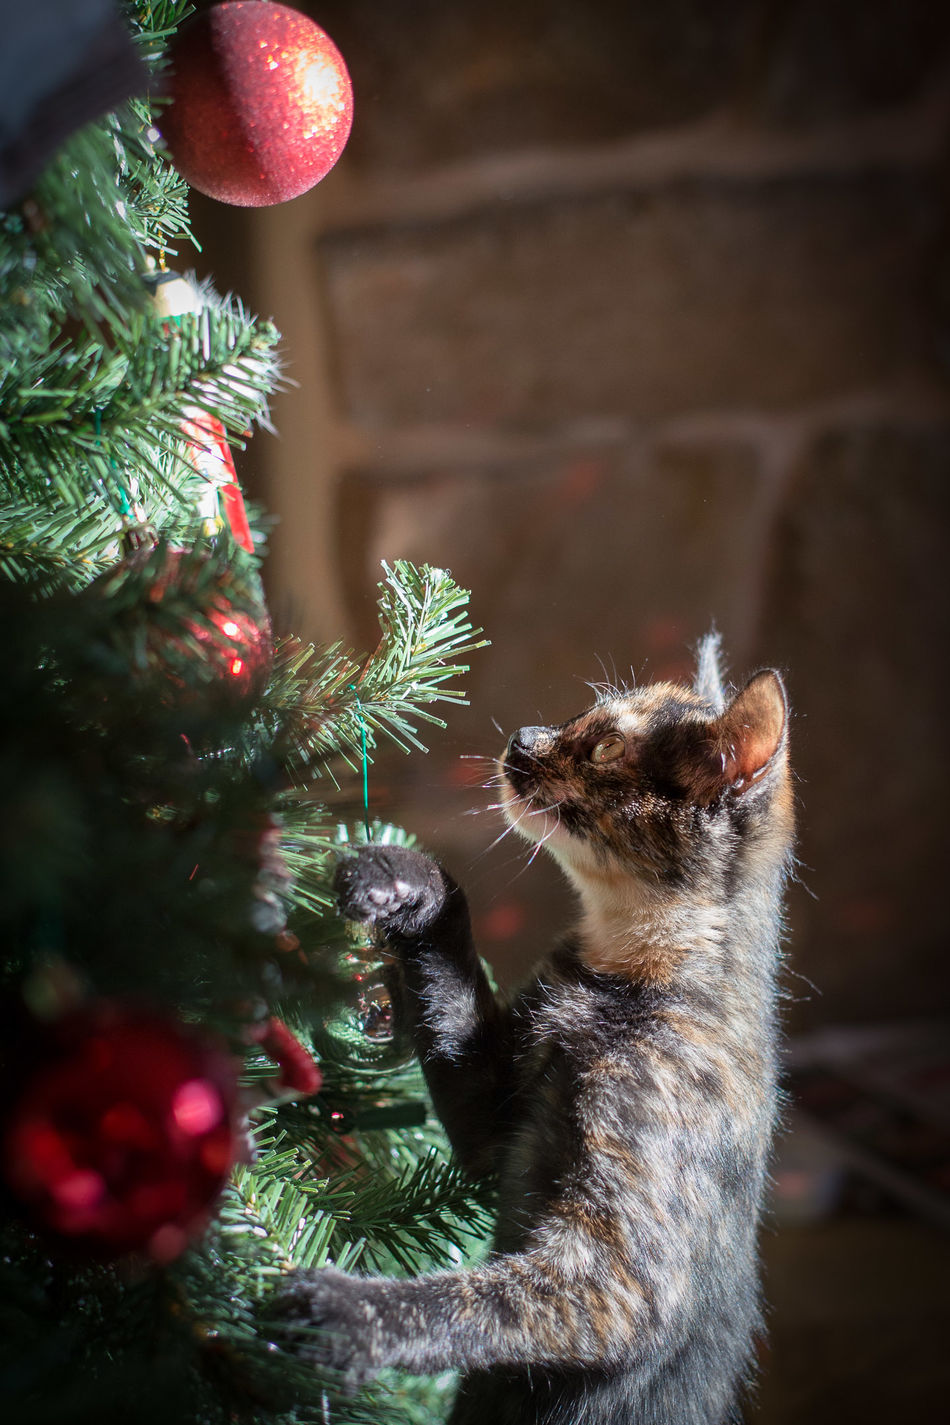 Merry Christmas! Christmas Tree Christmas Christmas Ornament Christmas Lights Kitty Kitten Cat